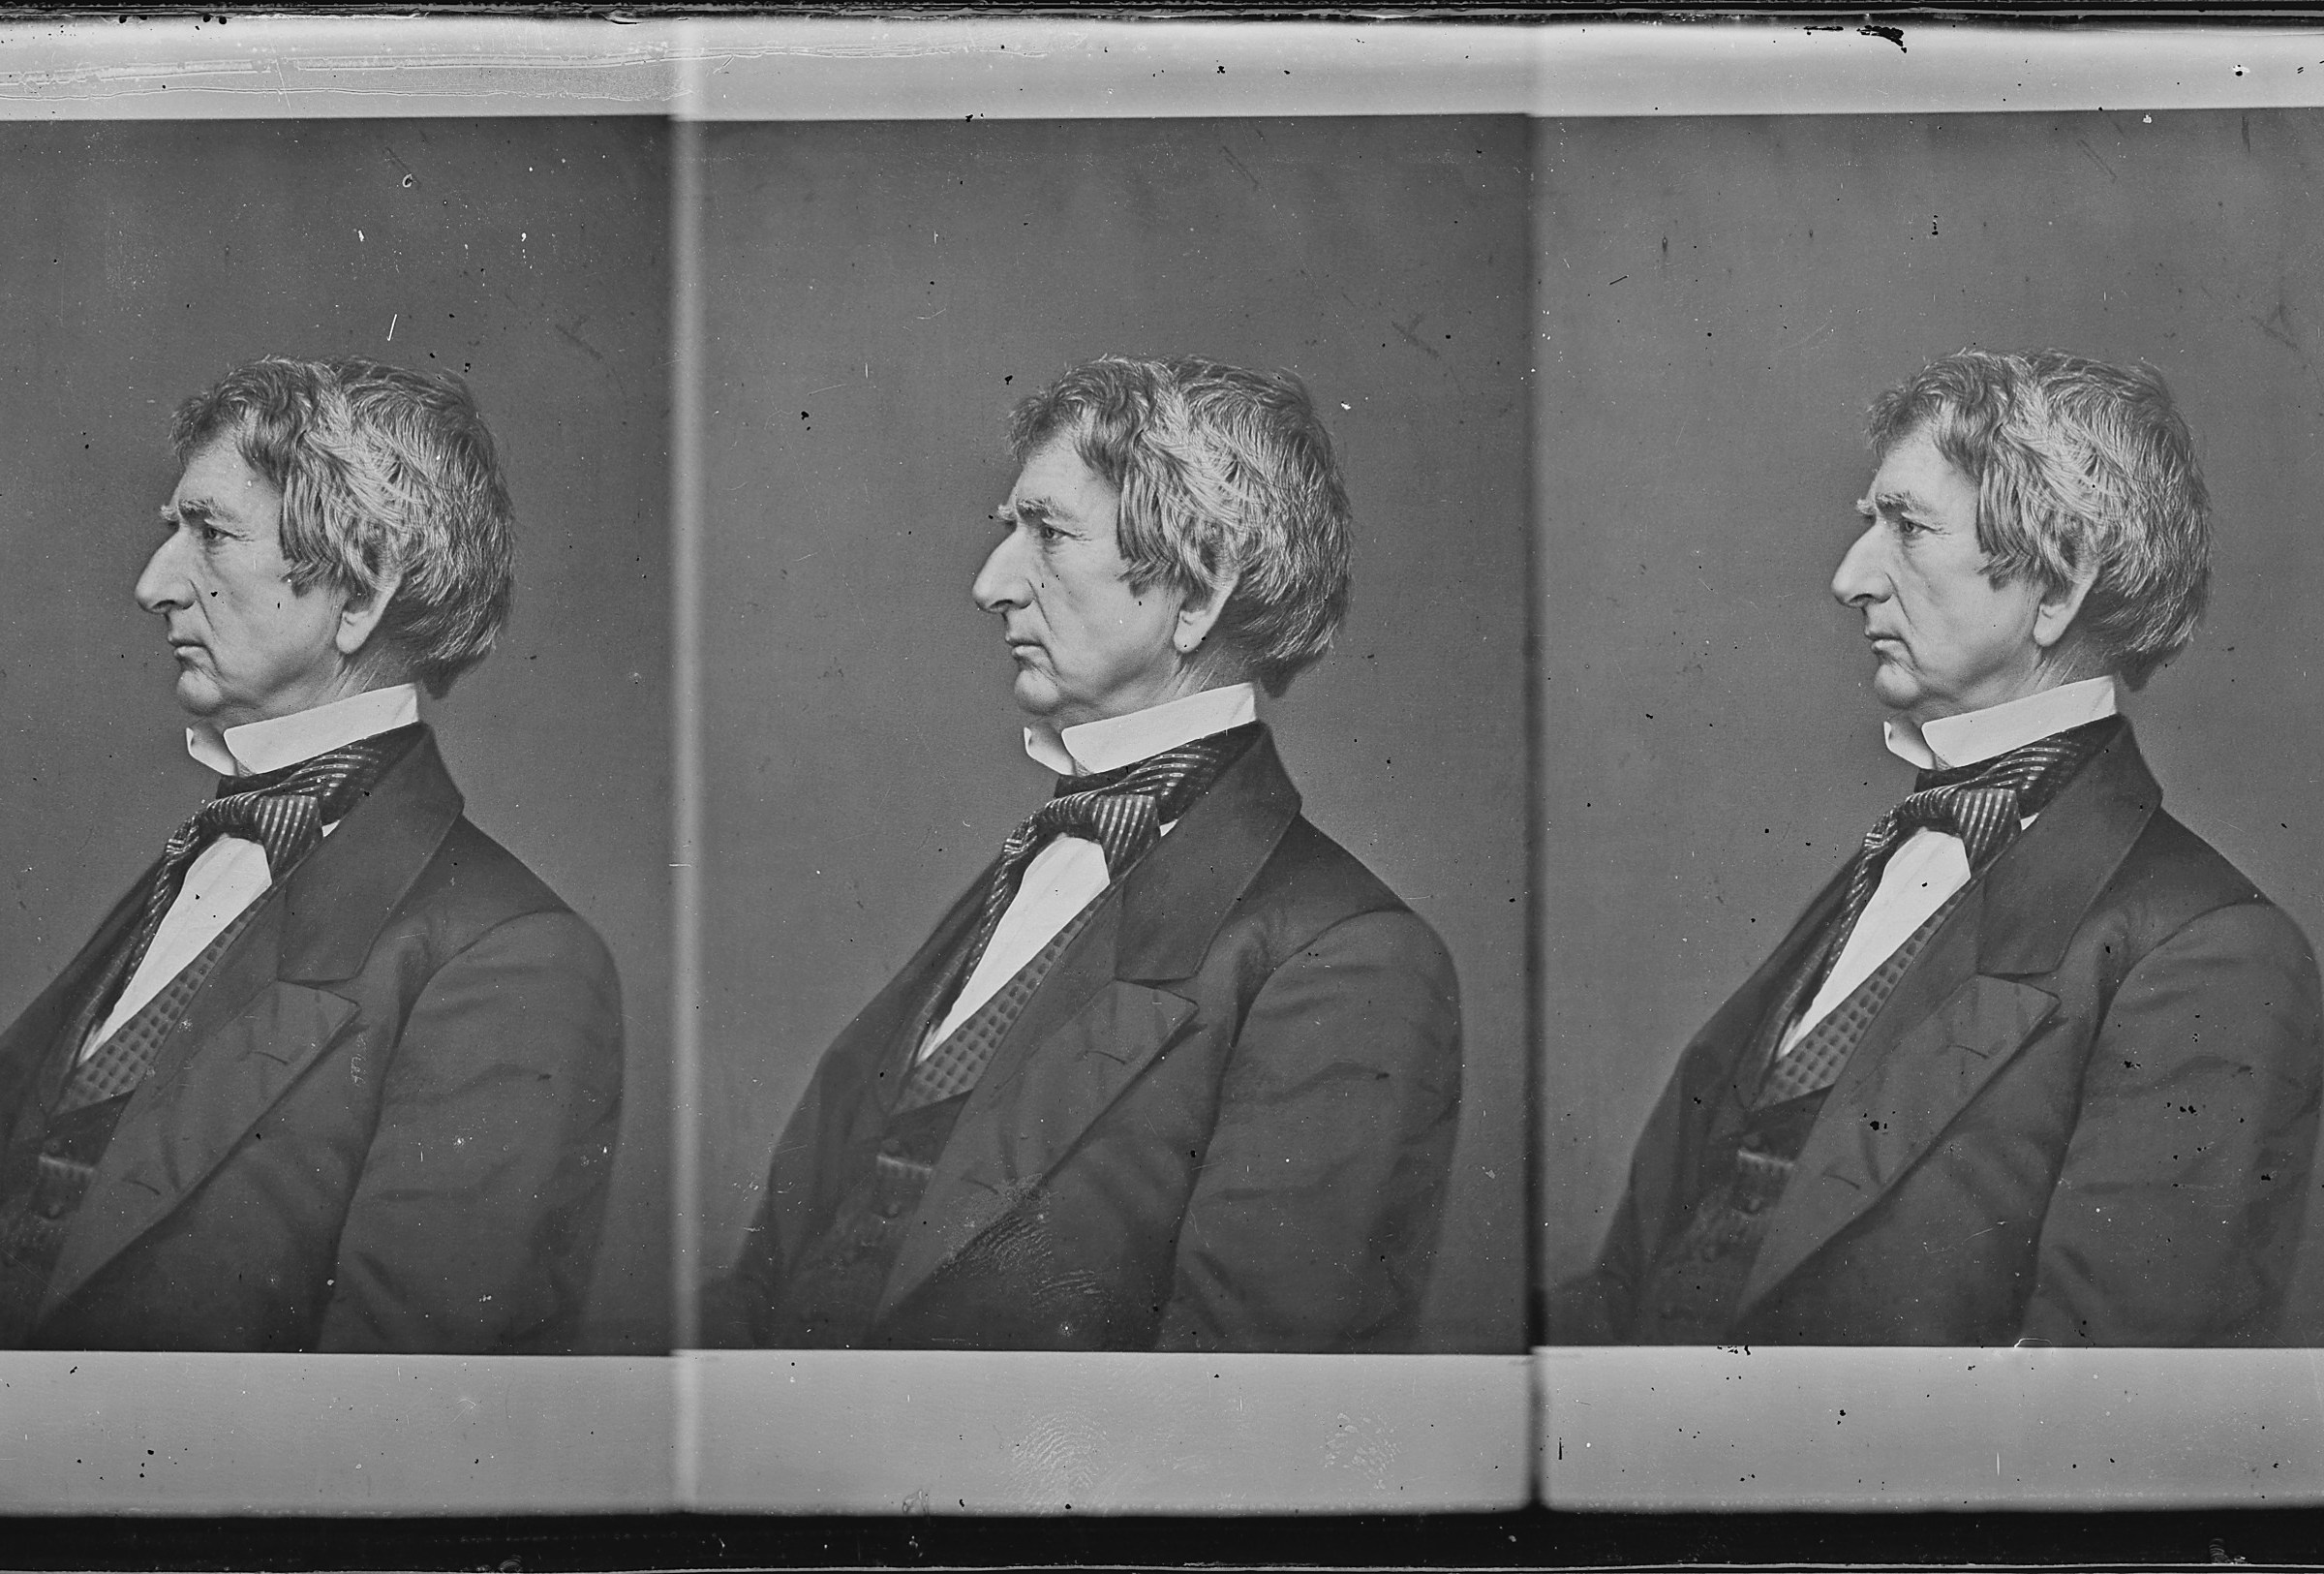 William Howard Seward